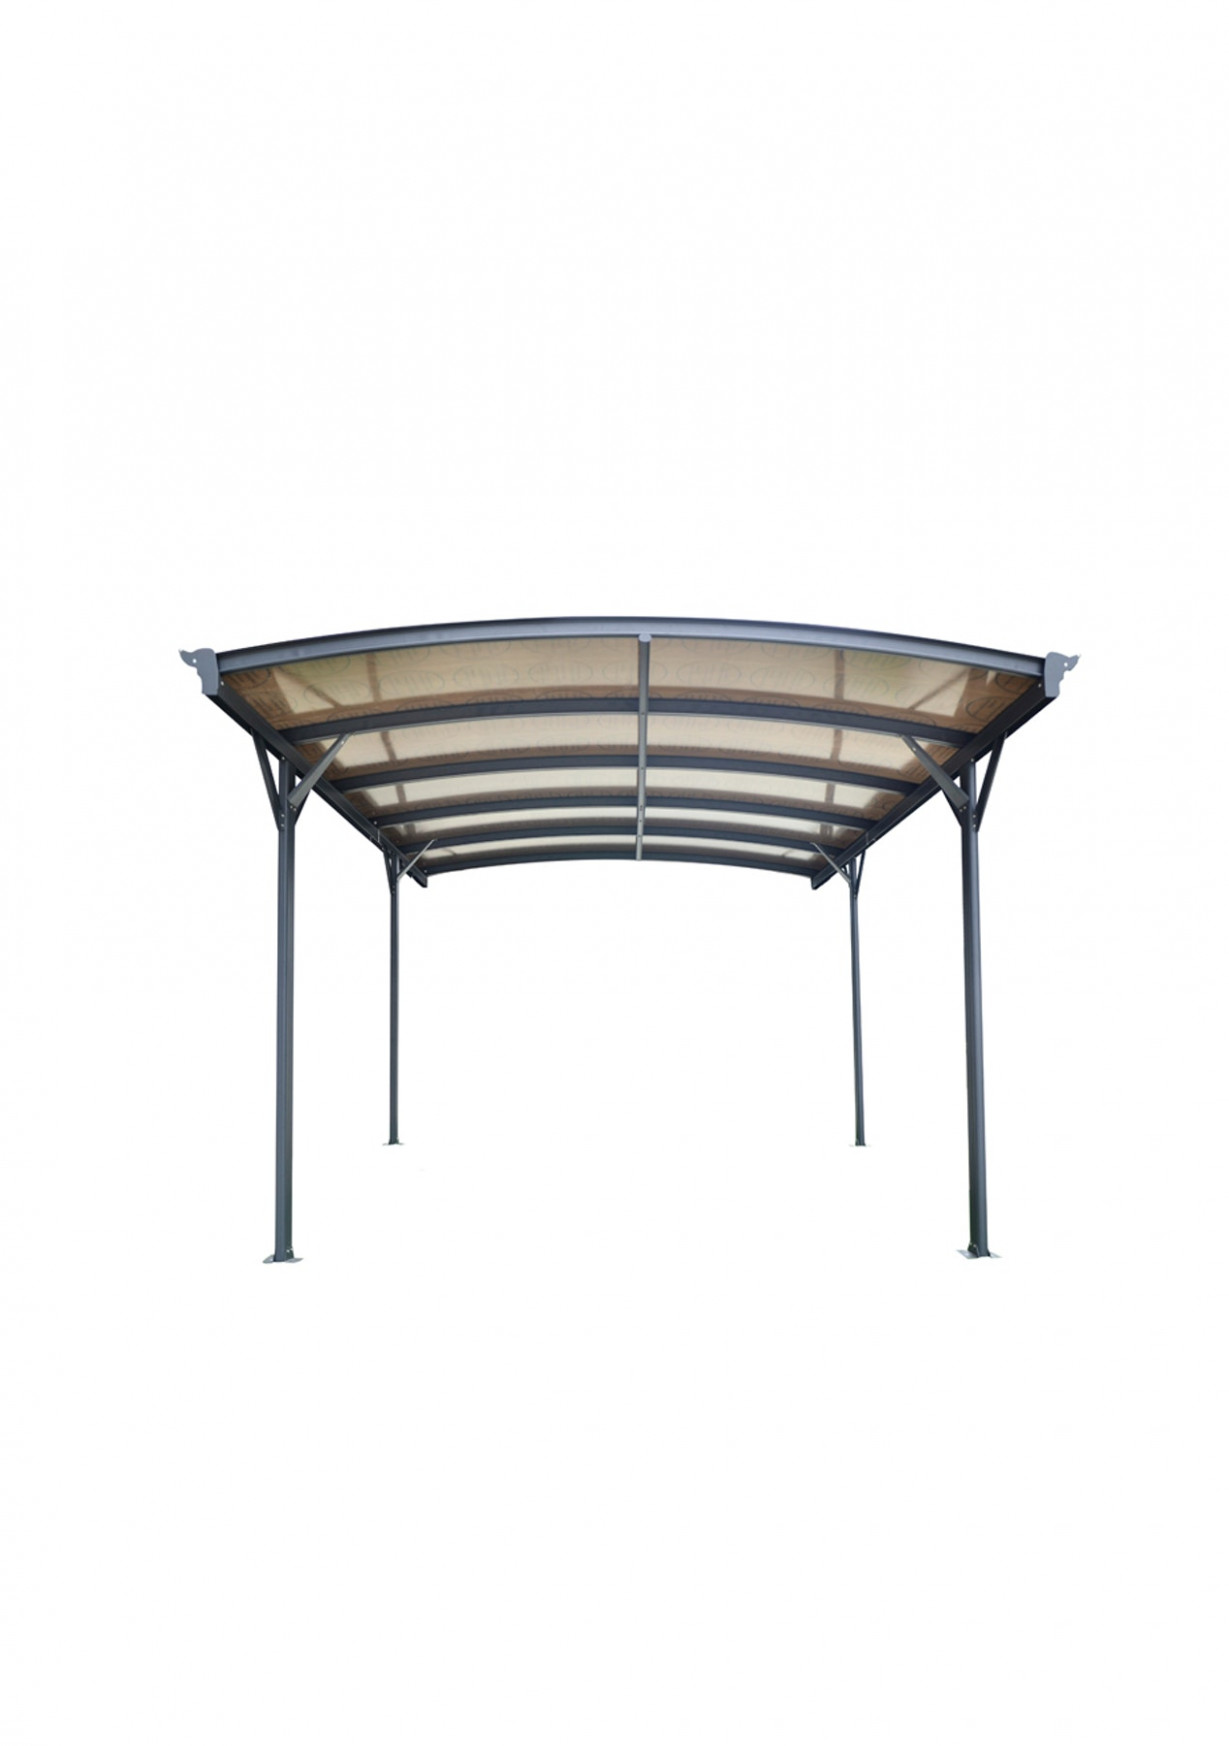 Curved Roof Freestanding Canopy/Carport 12L X 12W X 12H Carport Wall Decoration